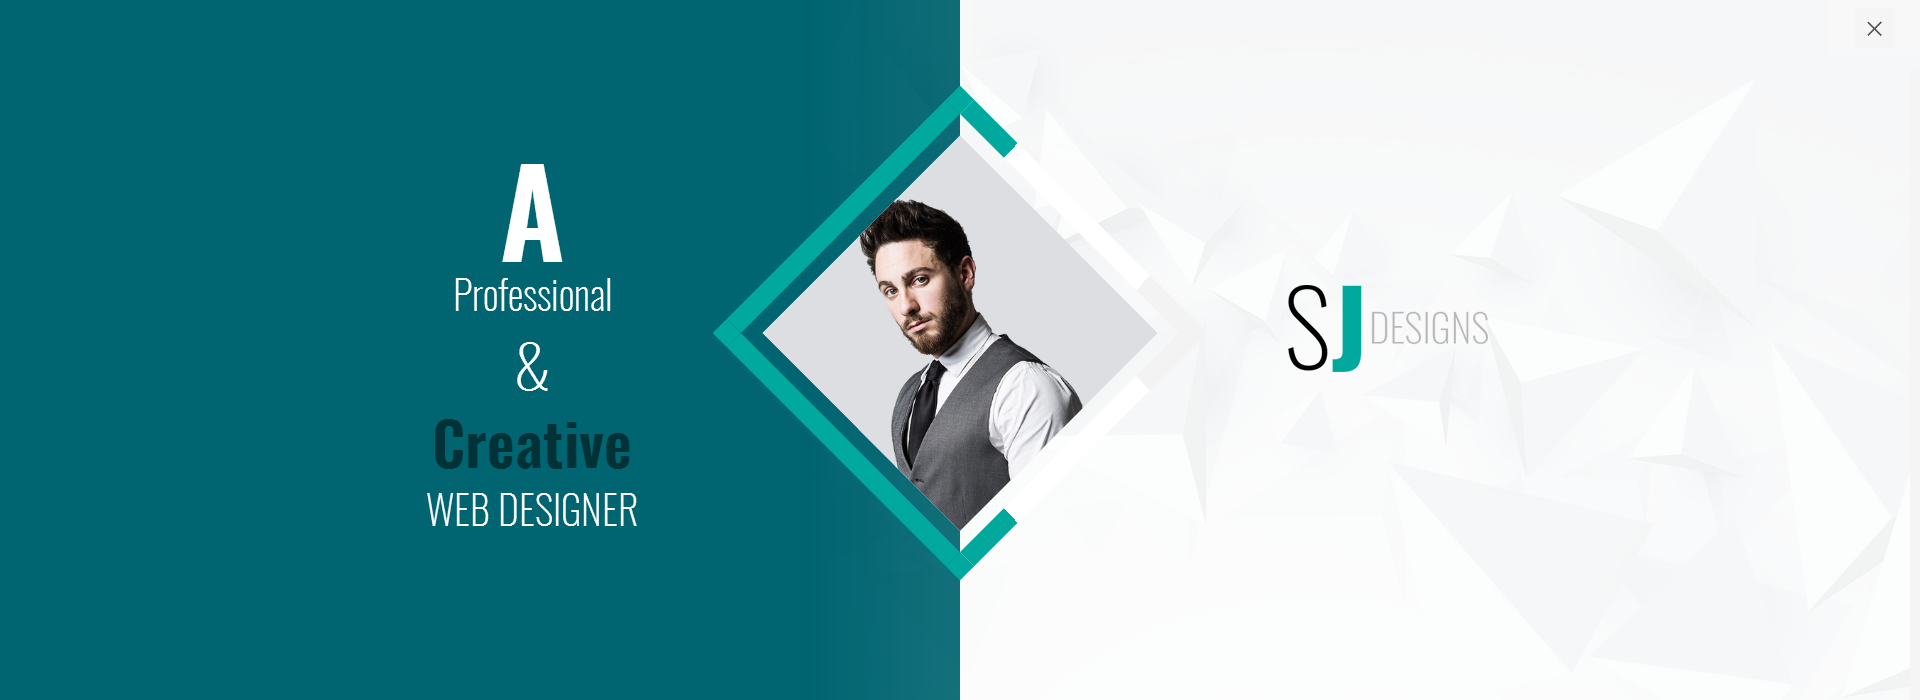 SJ DESIGNS Personal vcard Html Template by siddhigalande | ThemeForest